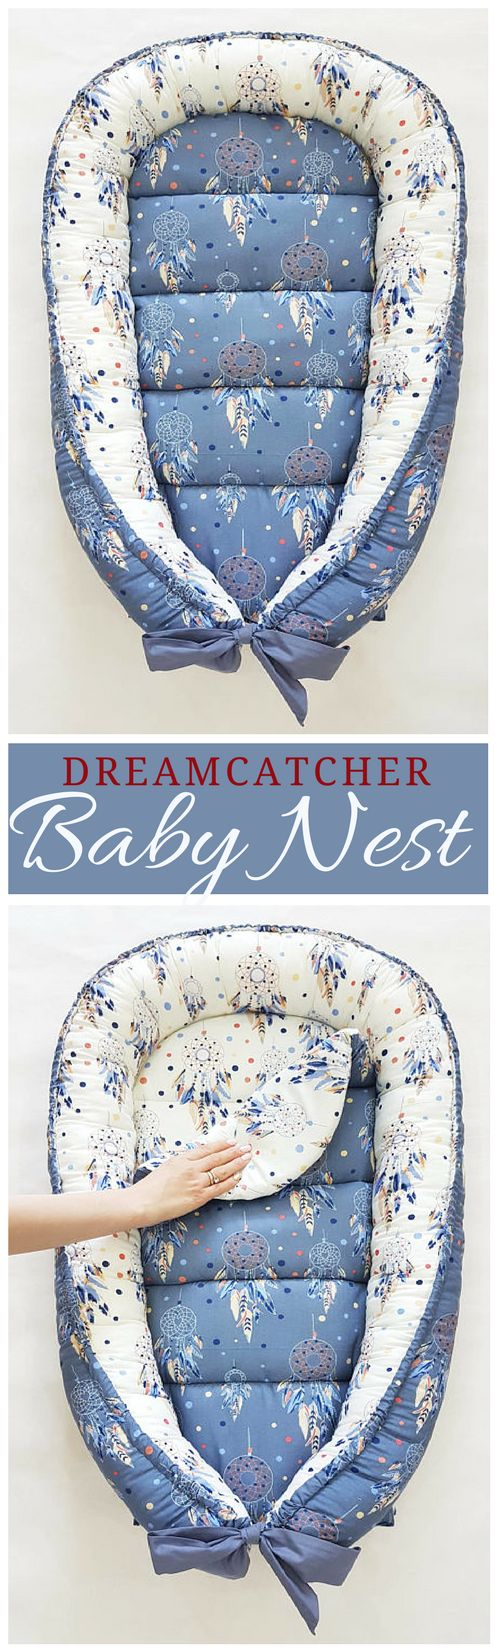 This must be the most precious baby nest I've ever seen. Love the dreamcatcher! Perfect gender neutral baby nest, great for either baby boy or baby girl.#ad #babynest #babyboho #dreamcatcher #bohobabynest #nursery #babylounger #newborngift